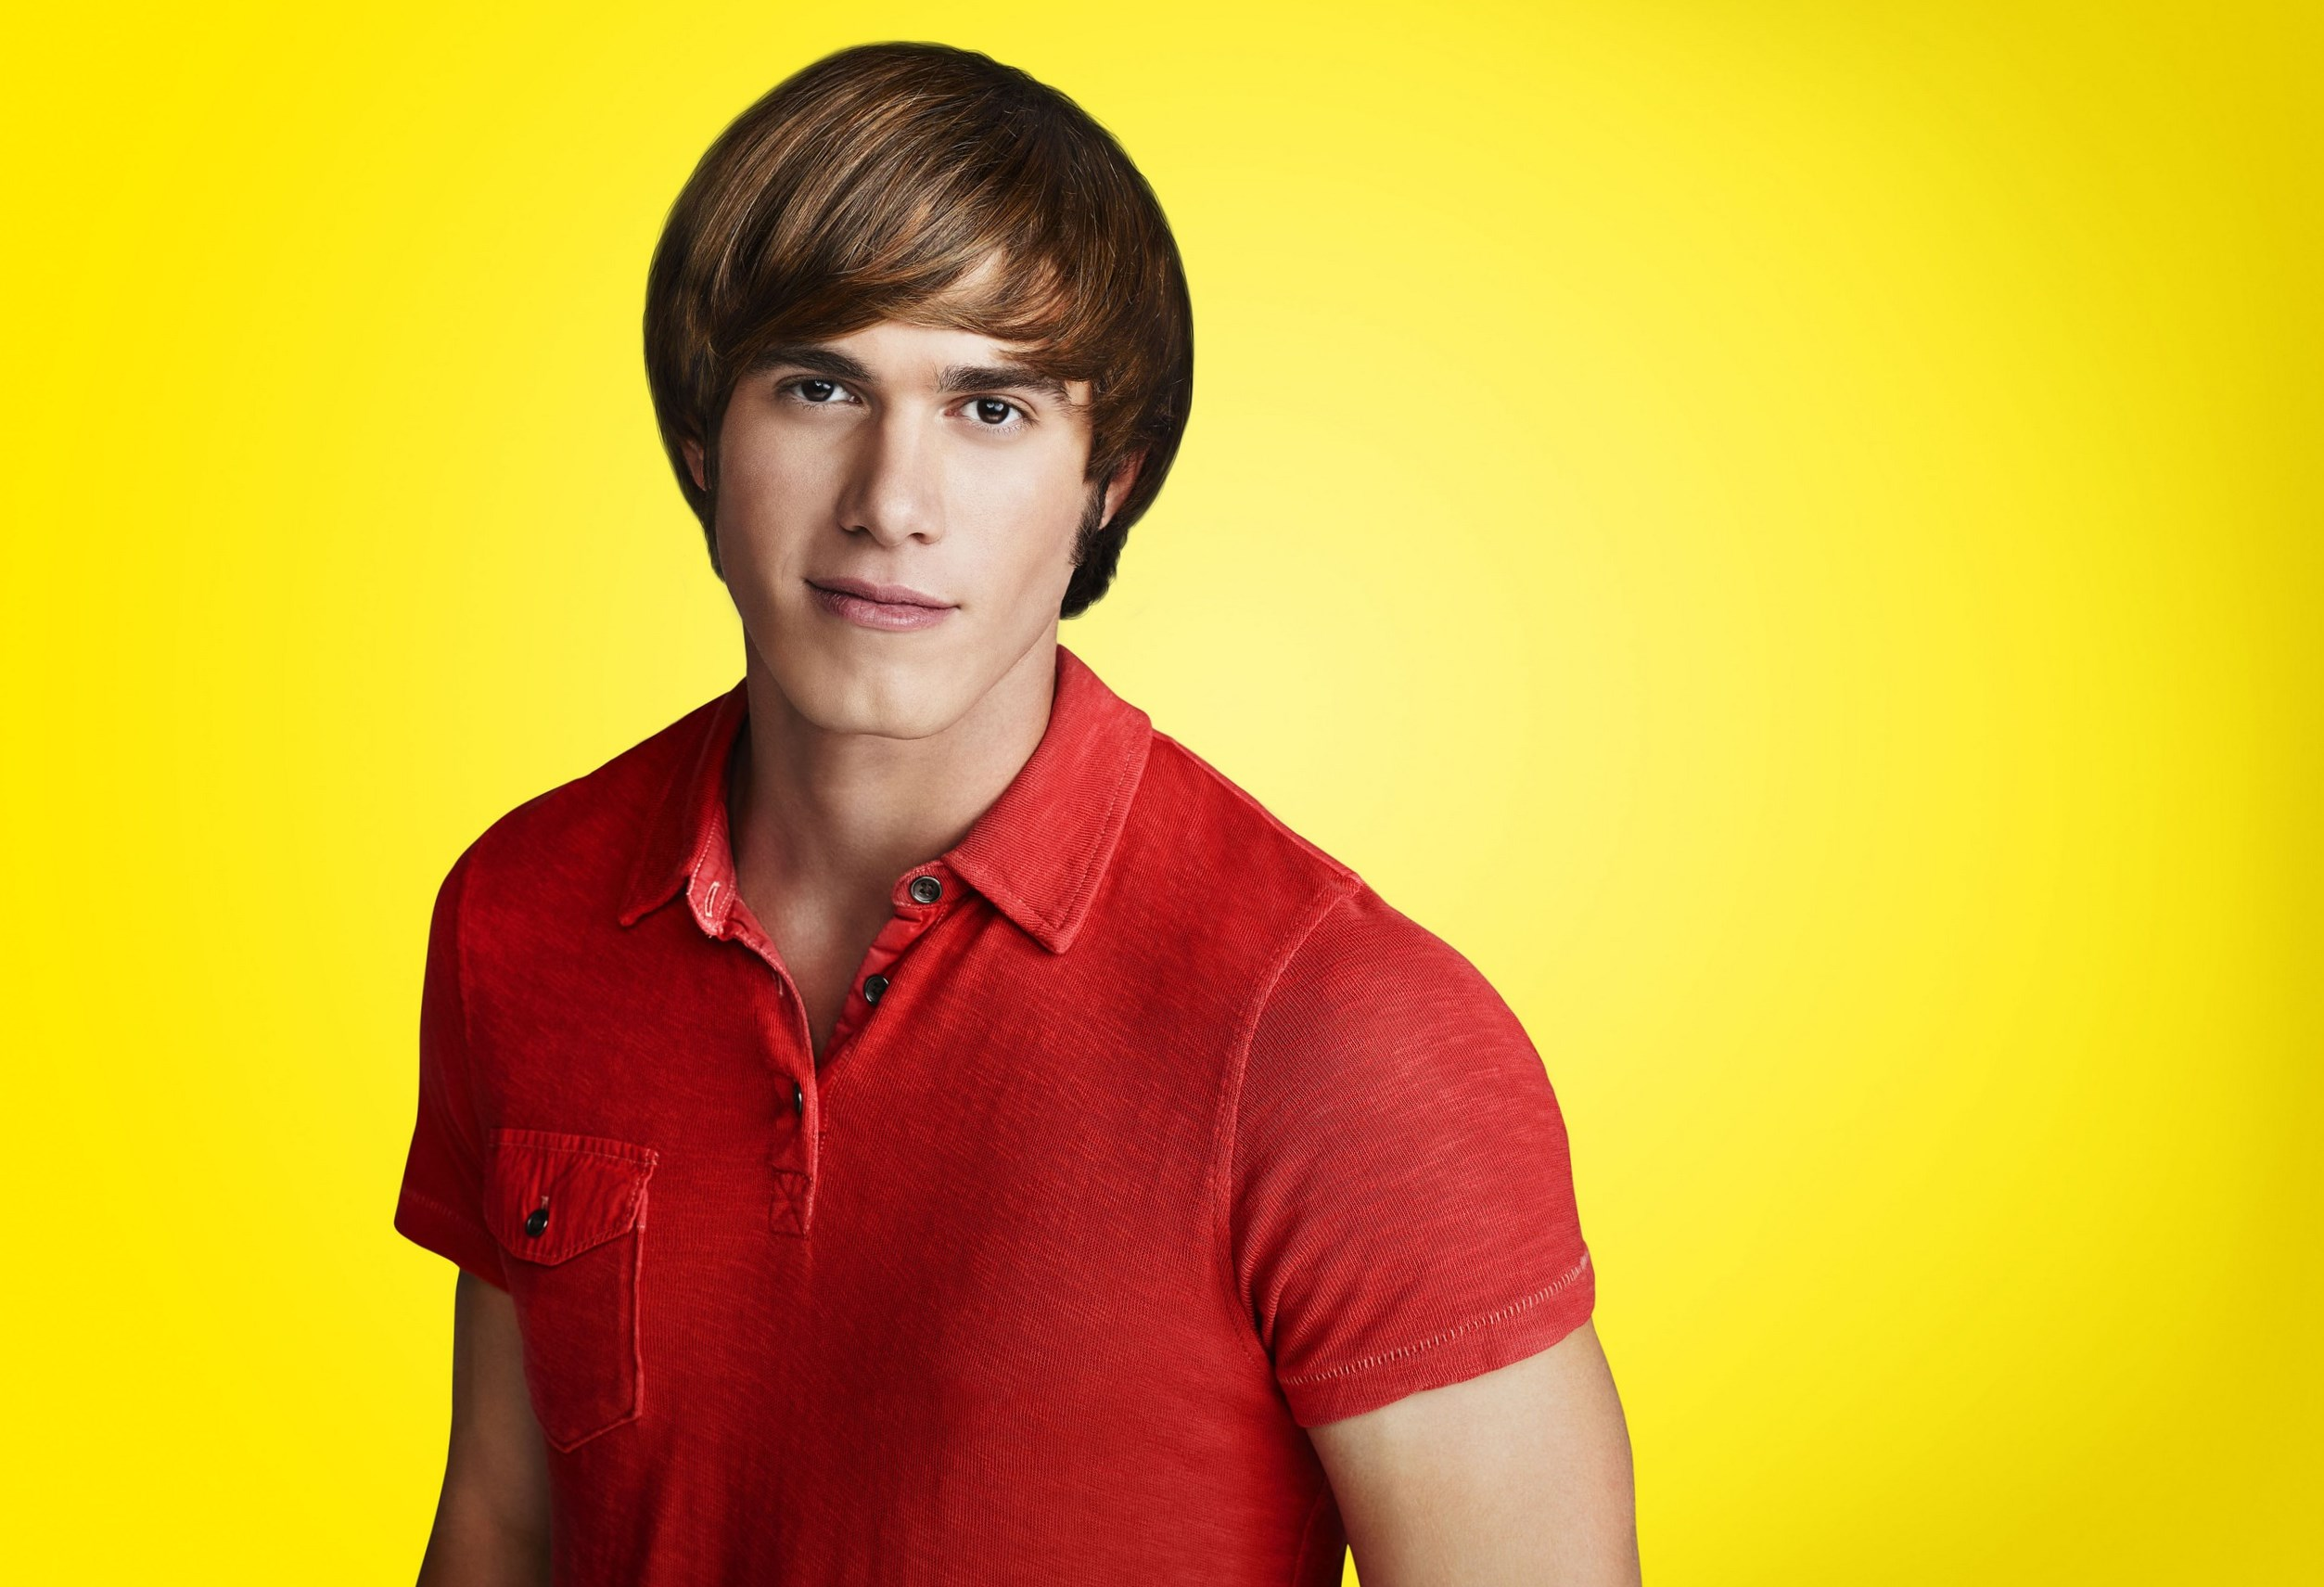 Blake Jenner Height, Weight, Age and Body Measurements